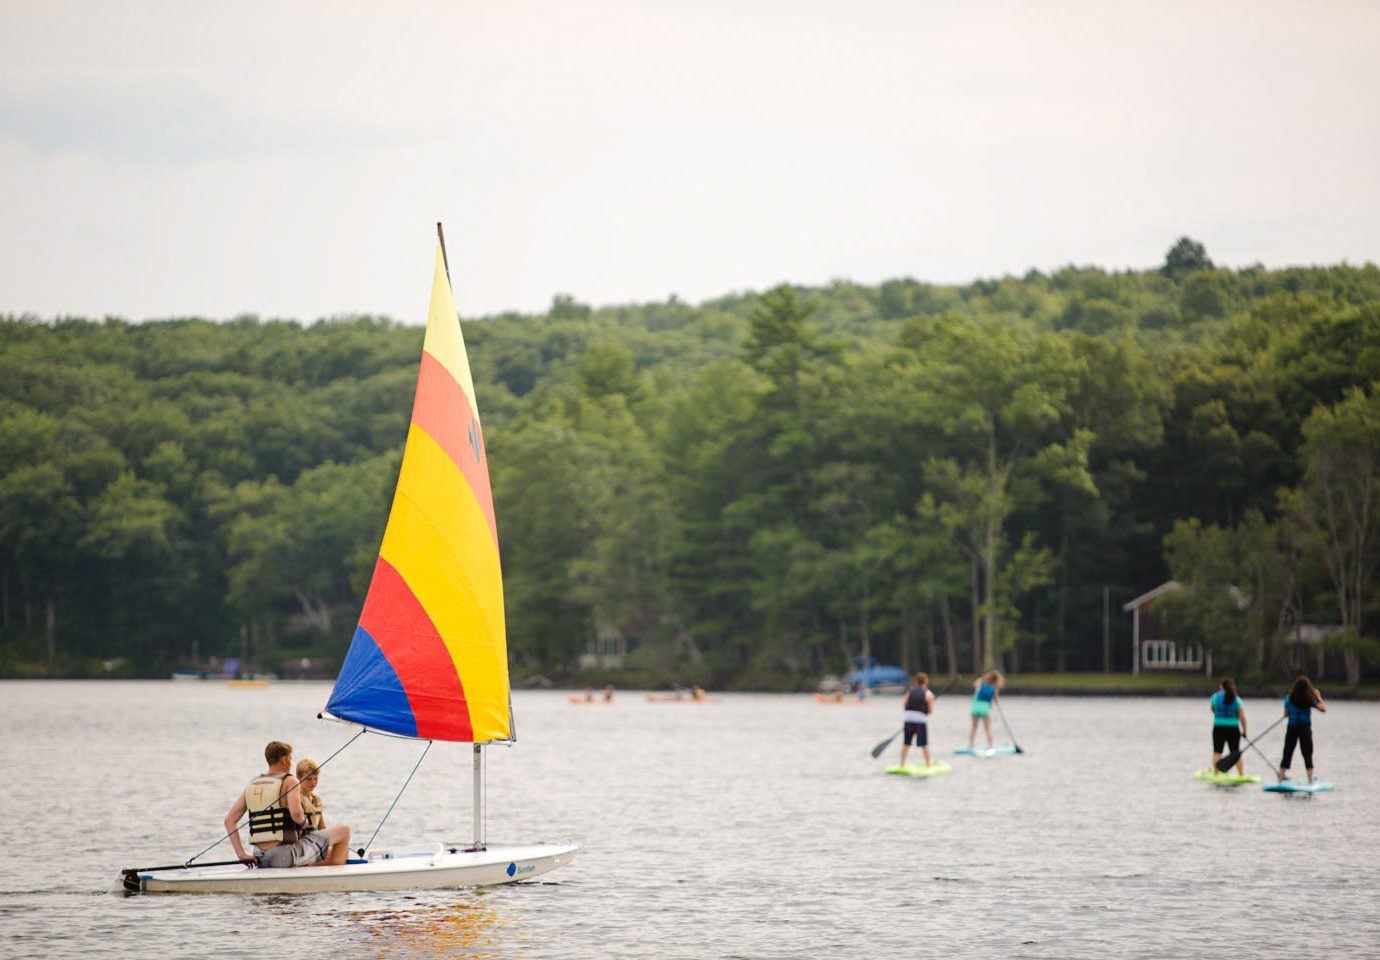 Trip Ideas Weekend Getaways tree outdoor water Boat watercraft transport Lake sailing sail sailboat vehicle boating dinghy sailing sports windsurfing wind Sea paddle